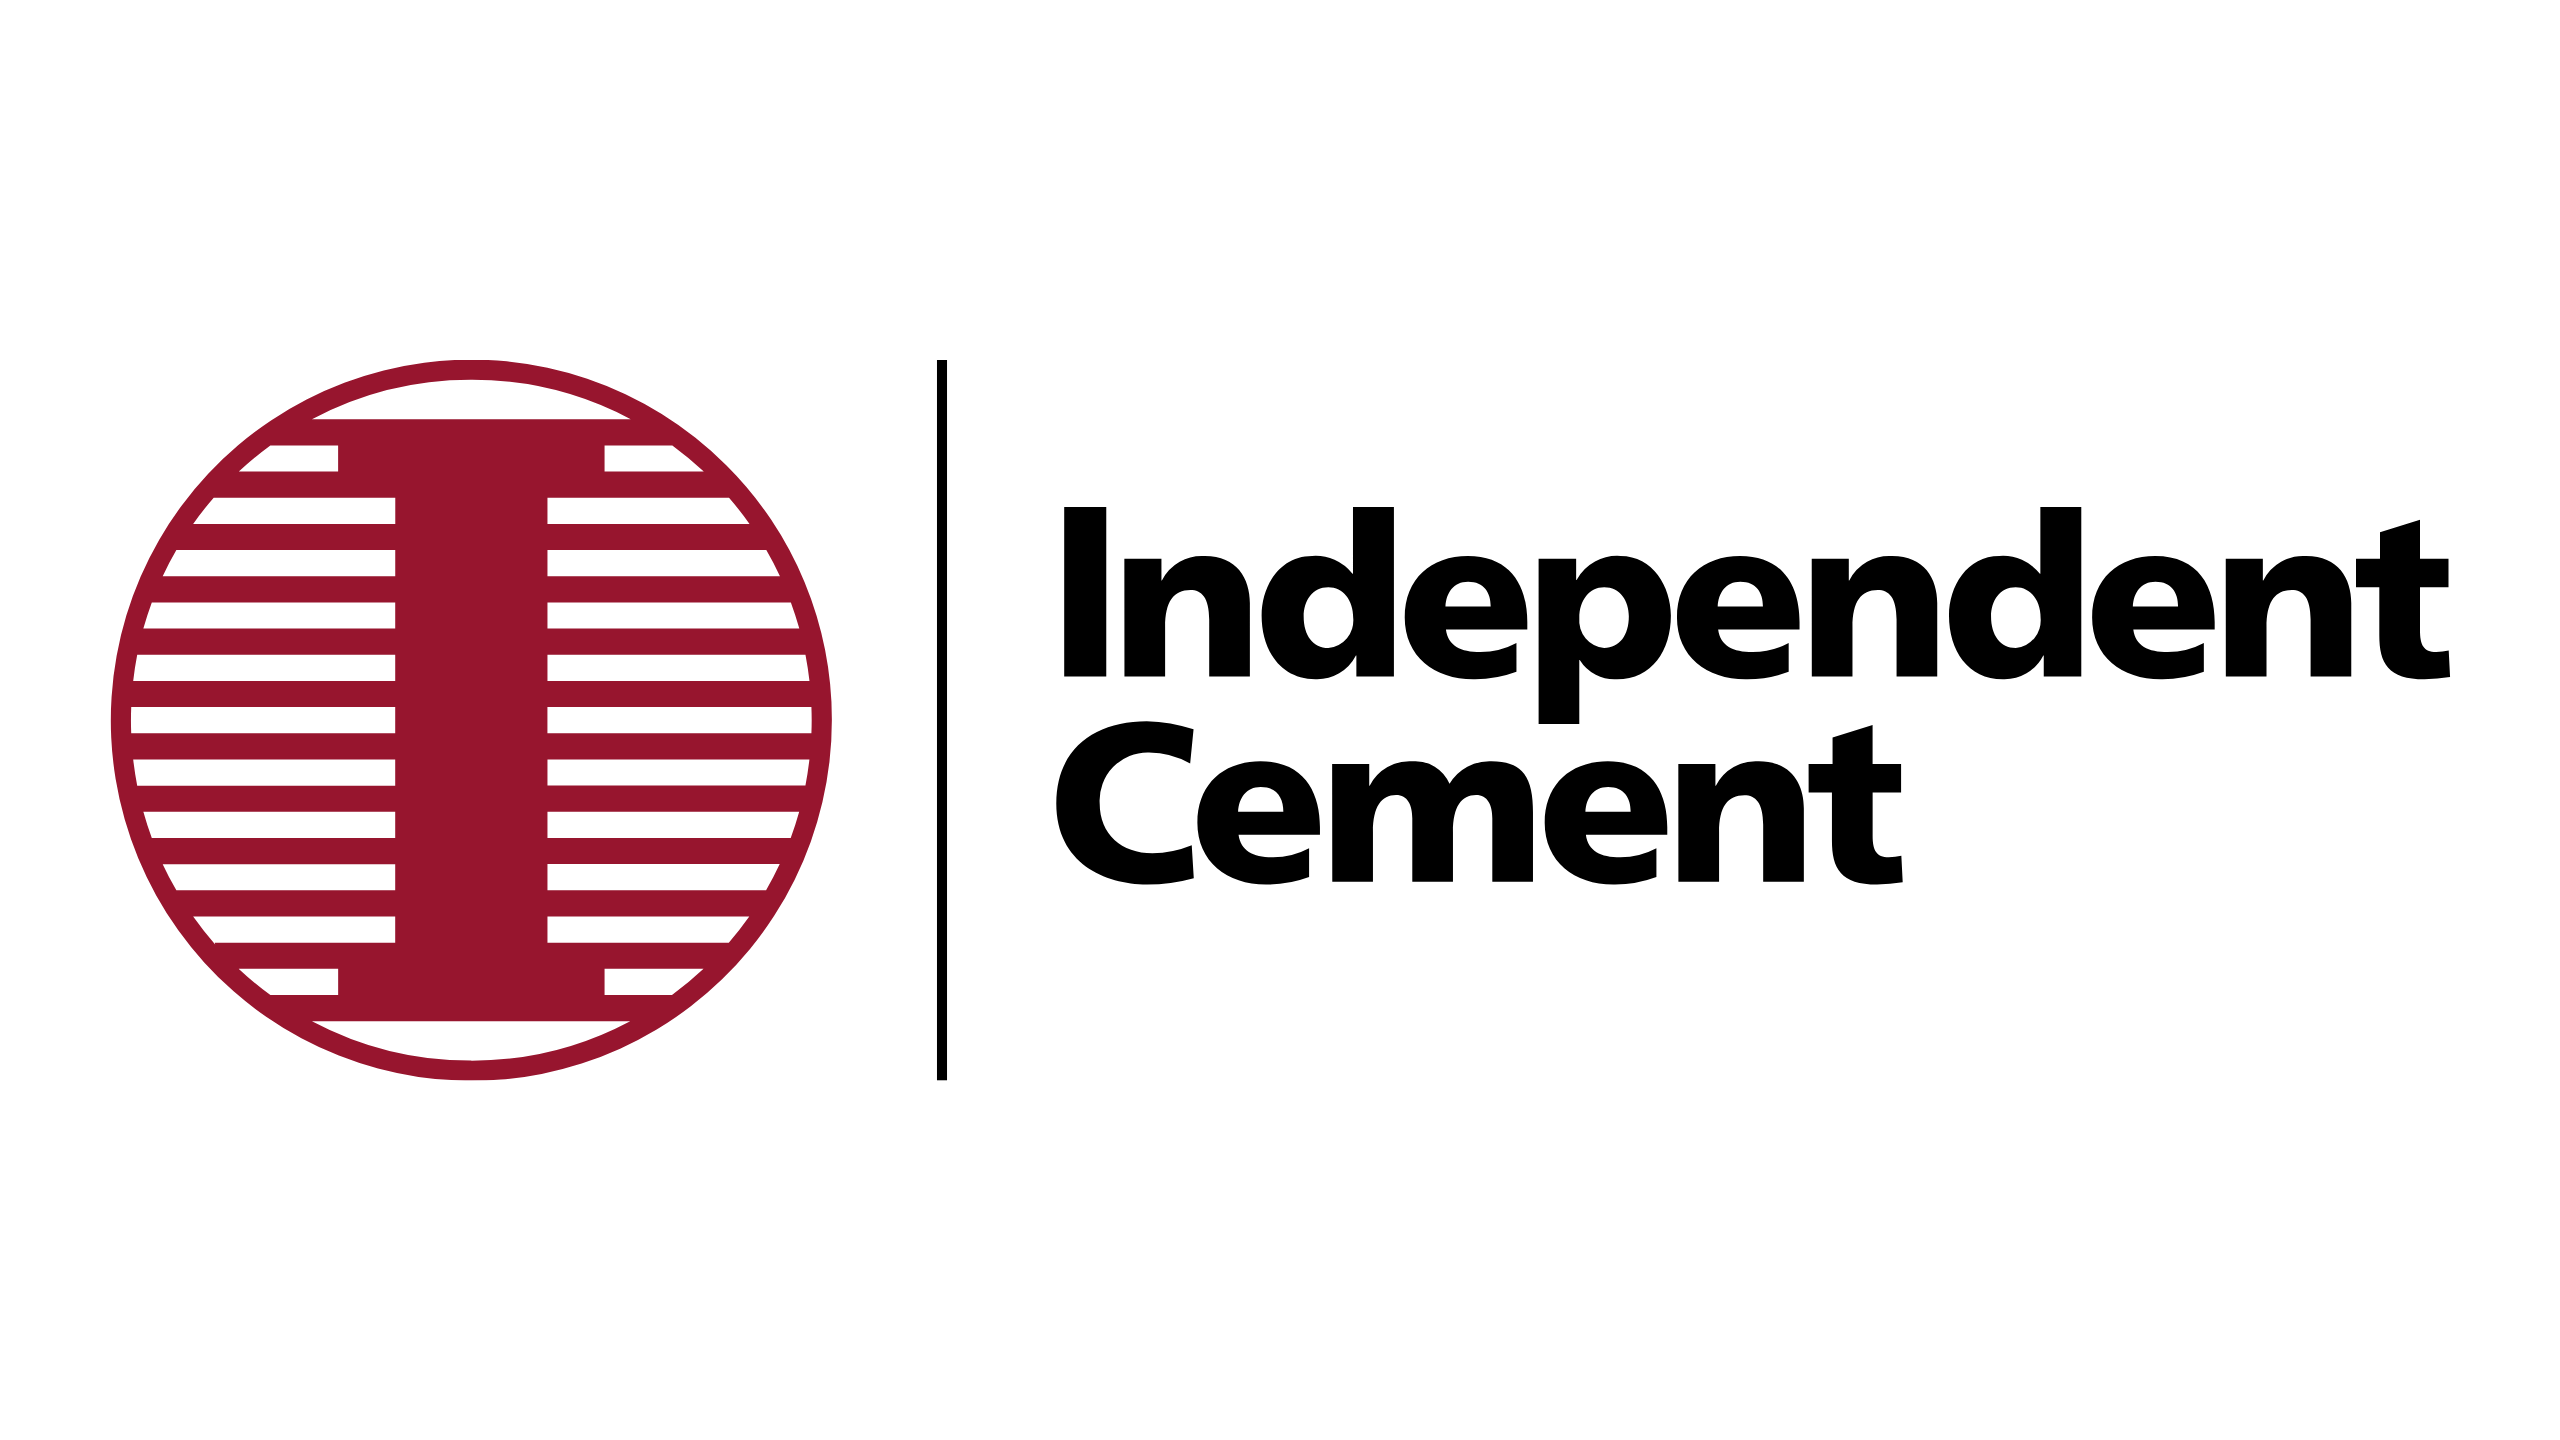 Independent Cement